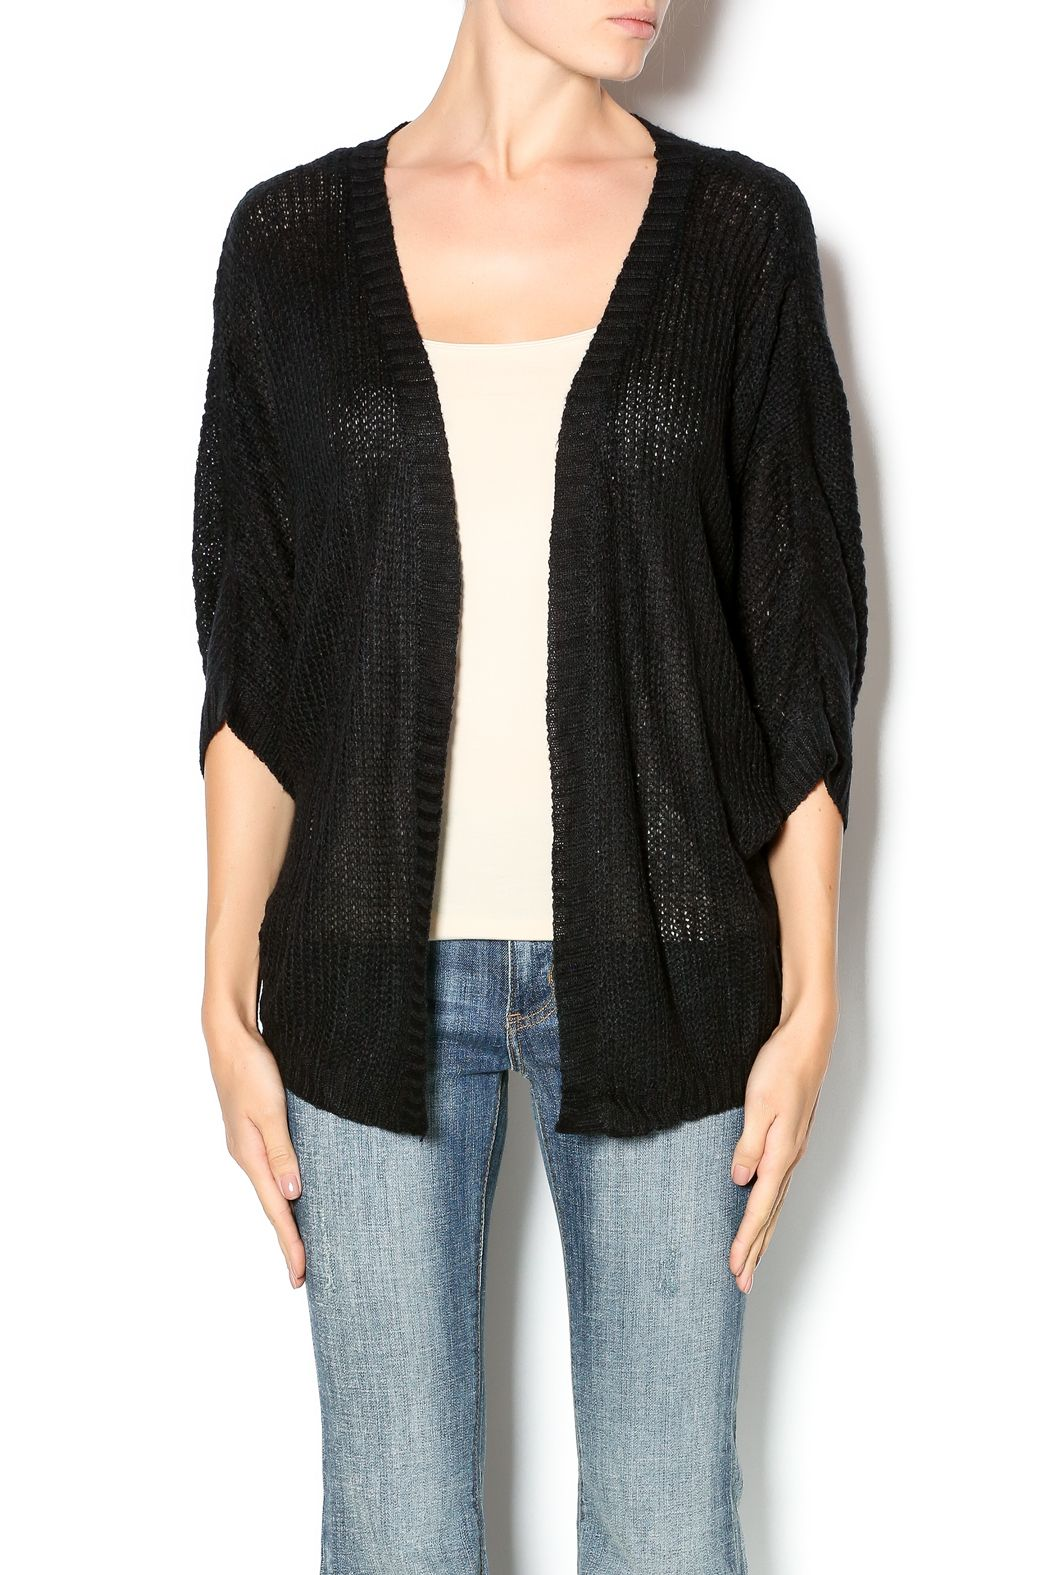 Finesse Black Sweater Cardigan | Products, To the and Clothing